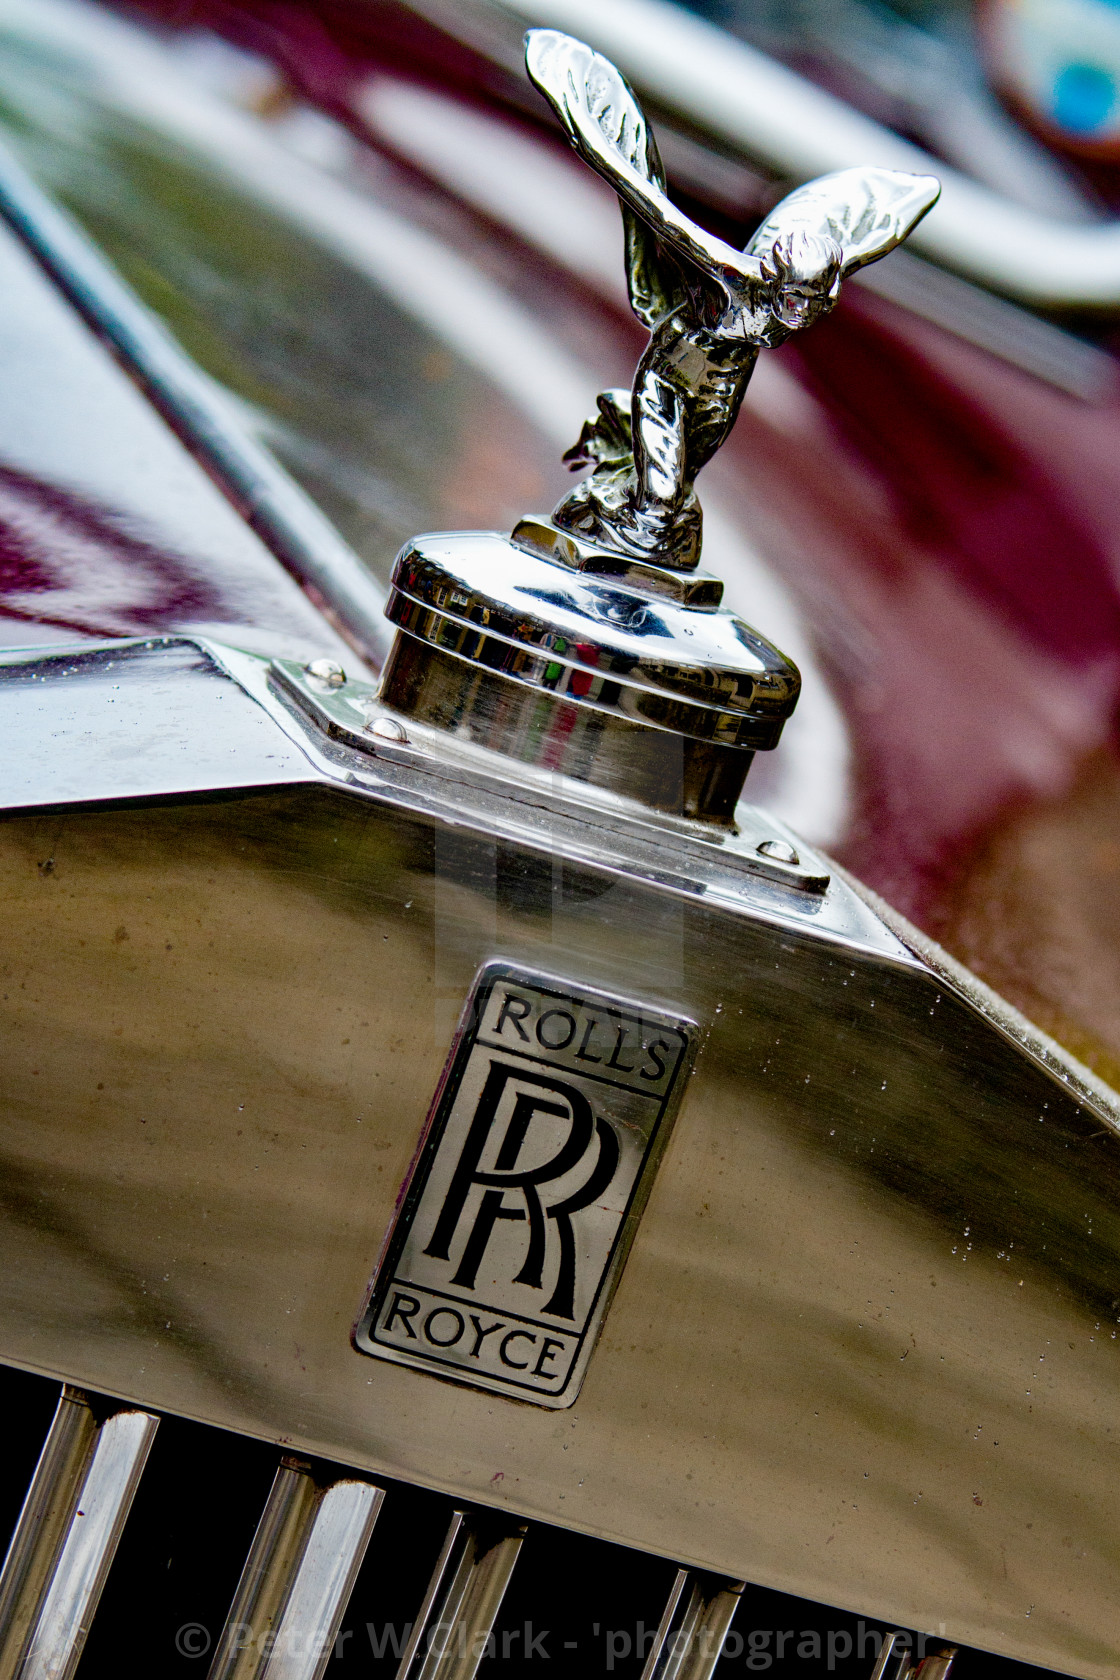 """""""Transport at the Haworth 1940's Weekend. Classic Rolls Royce car Emblem, The Spirit of Ecstasy is the bonnet ornament sculpture on Rolls-Royce cars."""" stock image"""